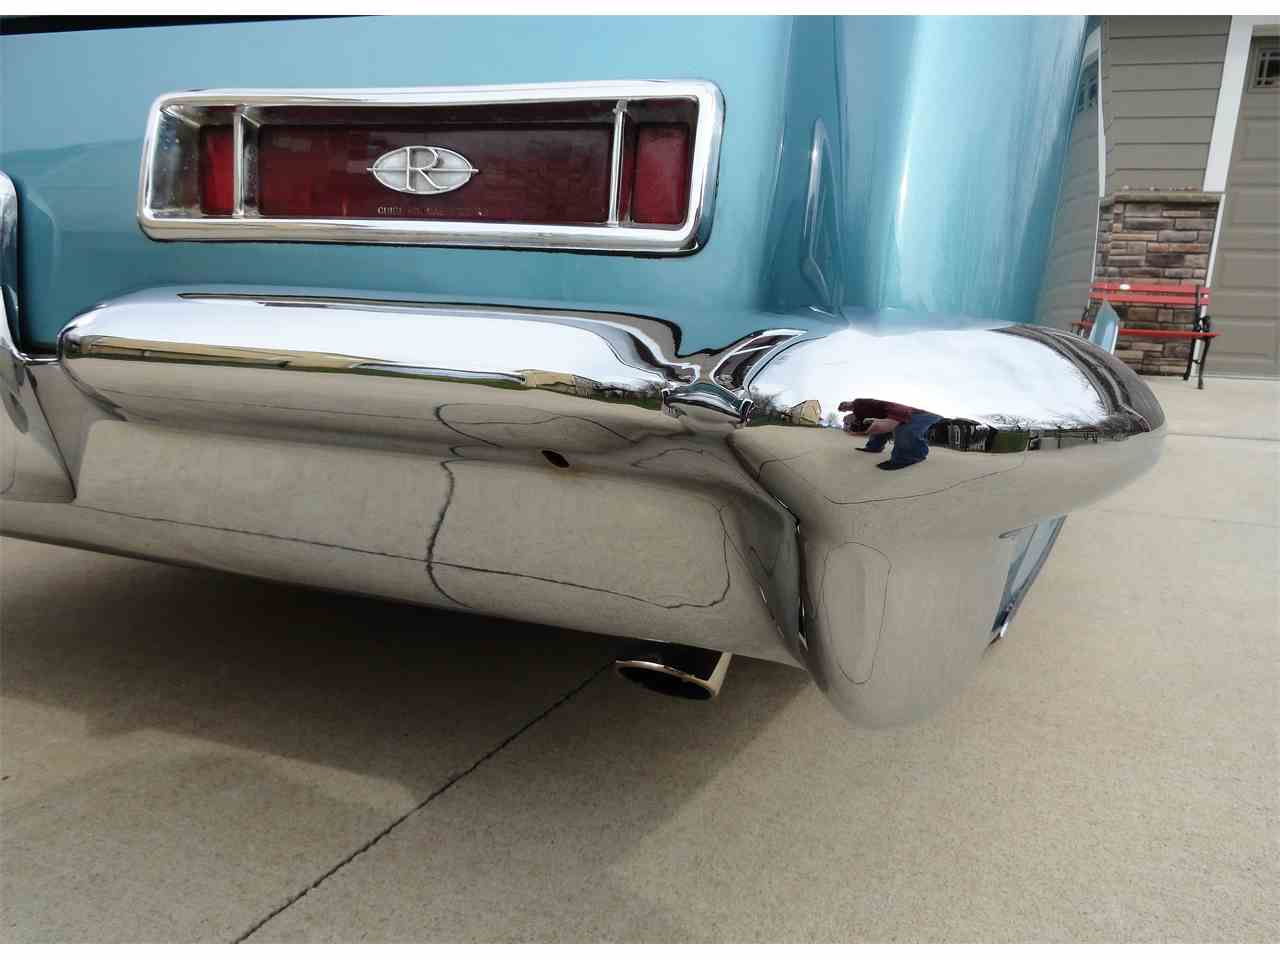 Large Picture of 1964 Riviera located in Urbandale Iowa - $31,500.00 Offered by a Private Seller - NCAV